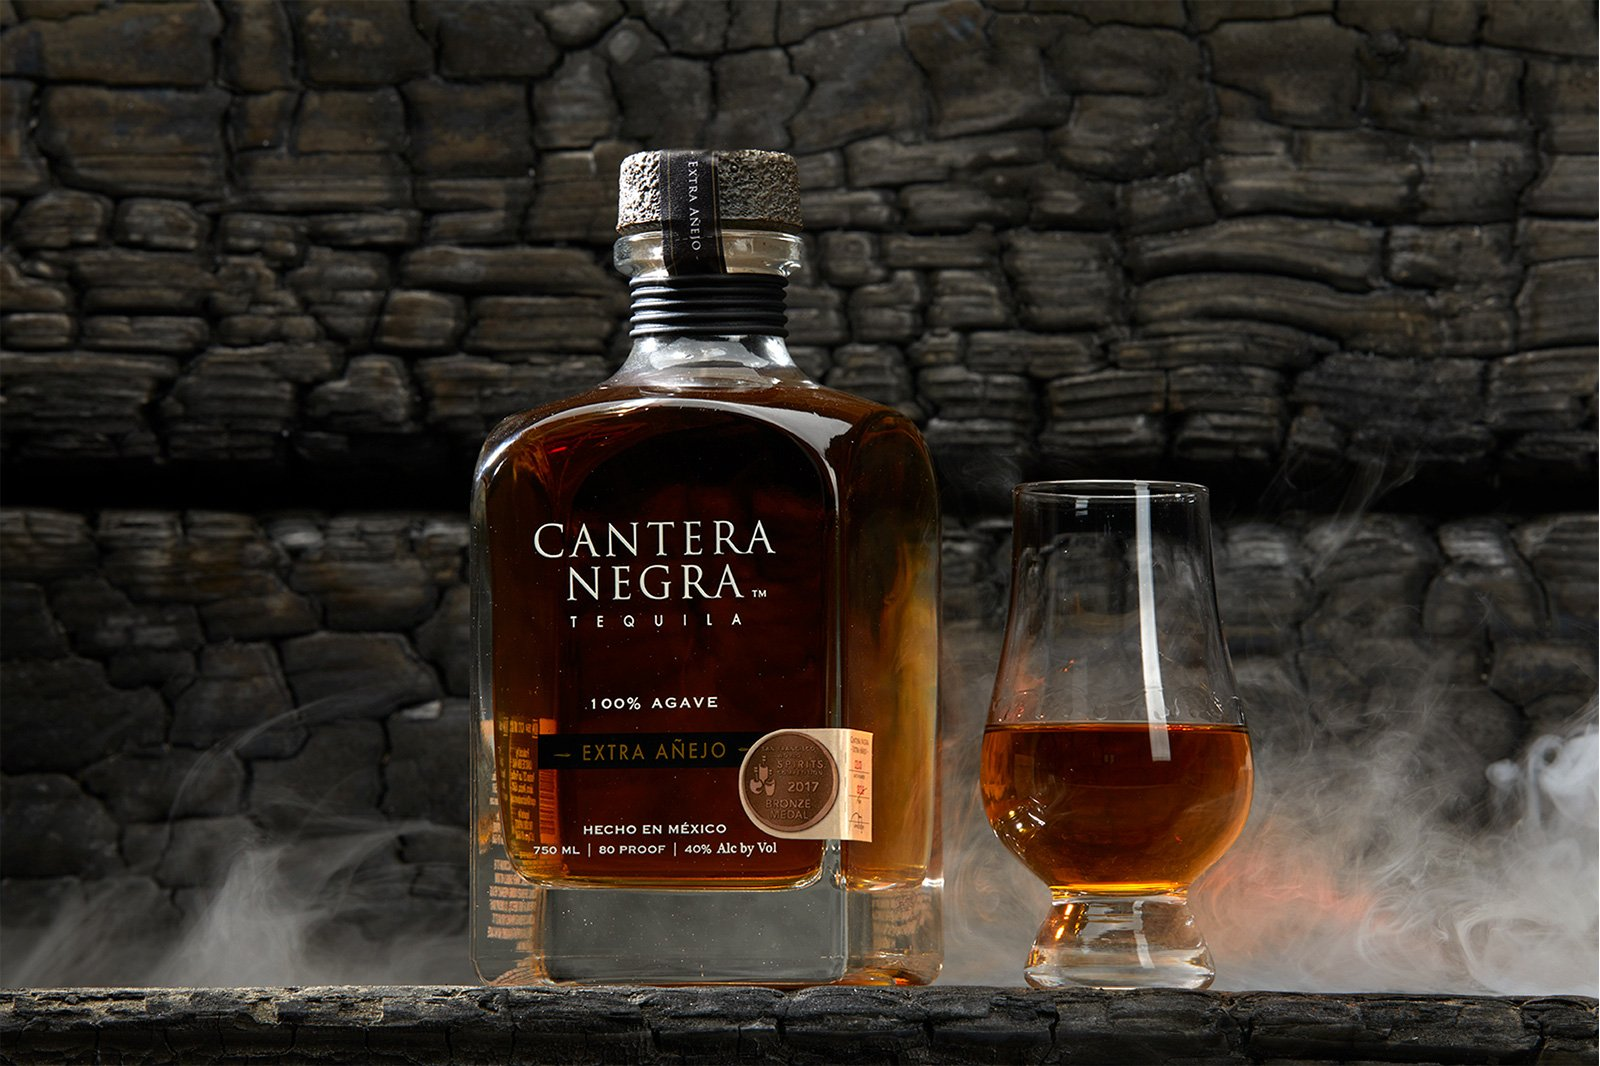 A cantera negra bottle with smoke before retouching